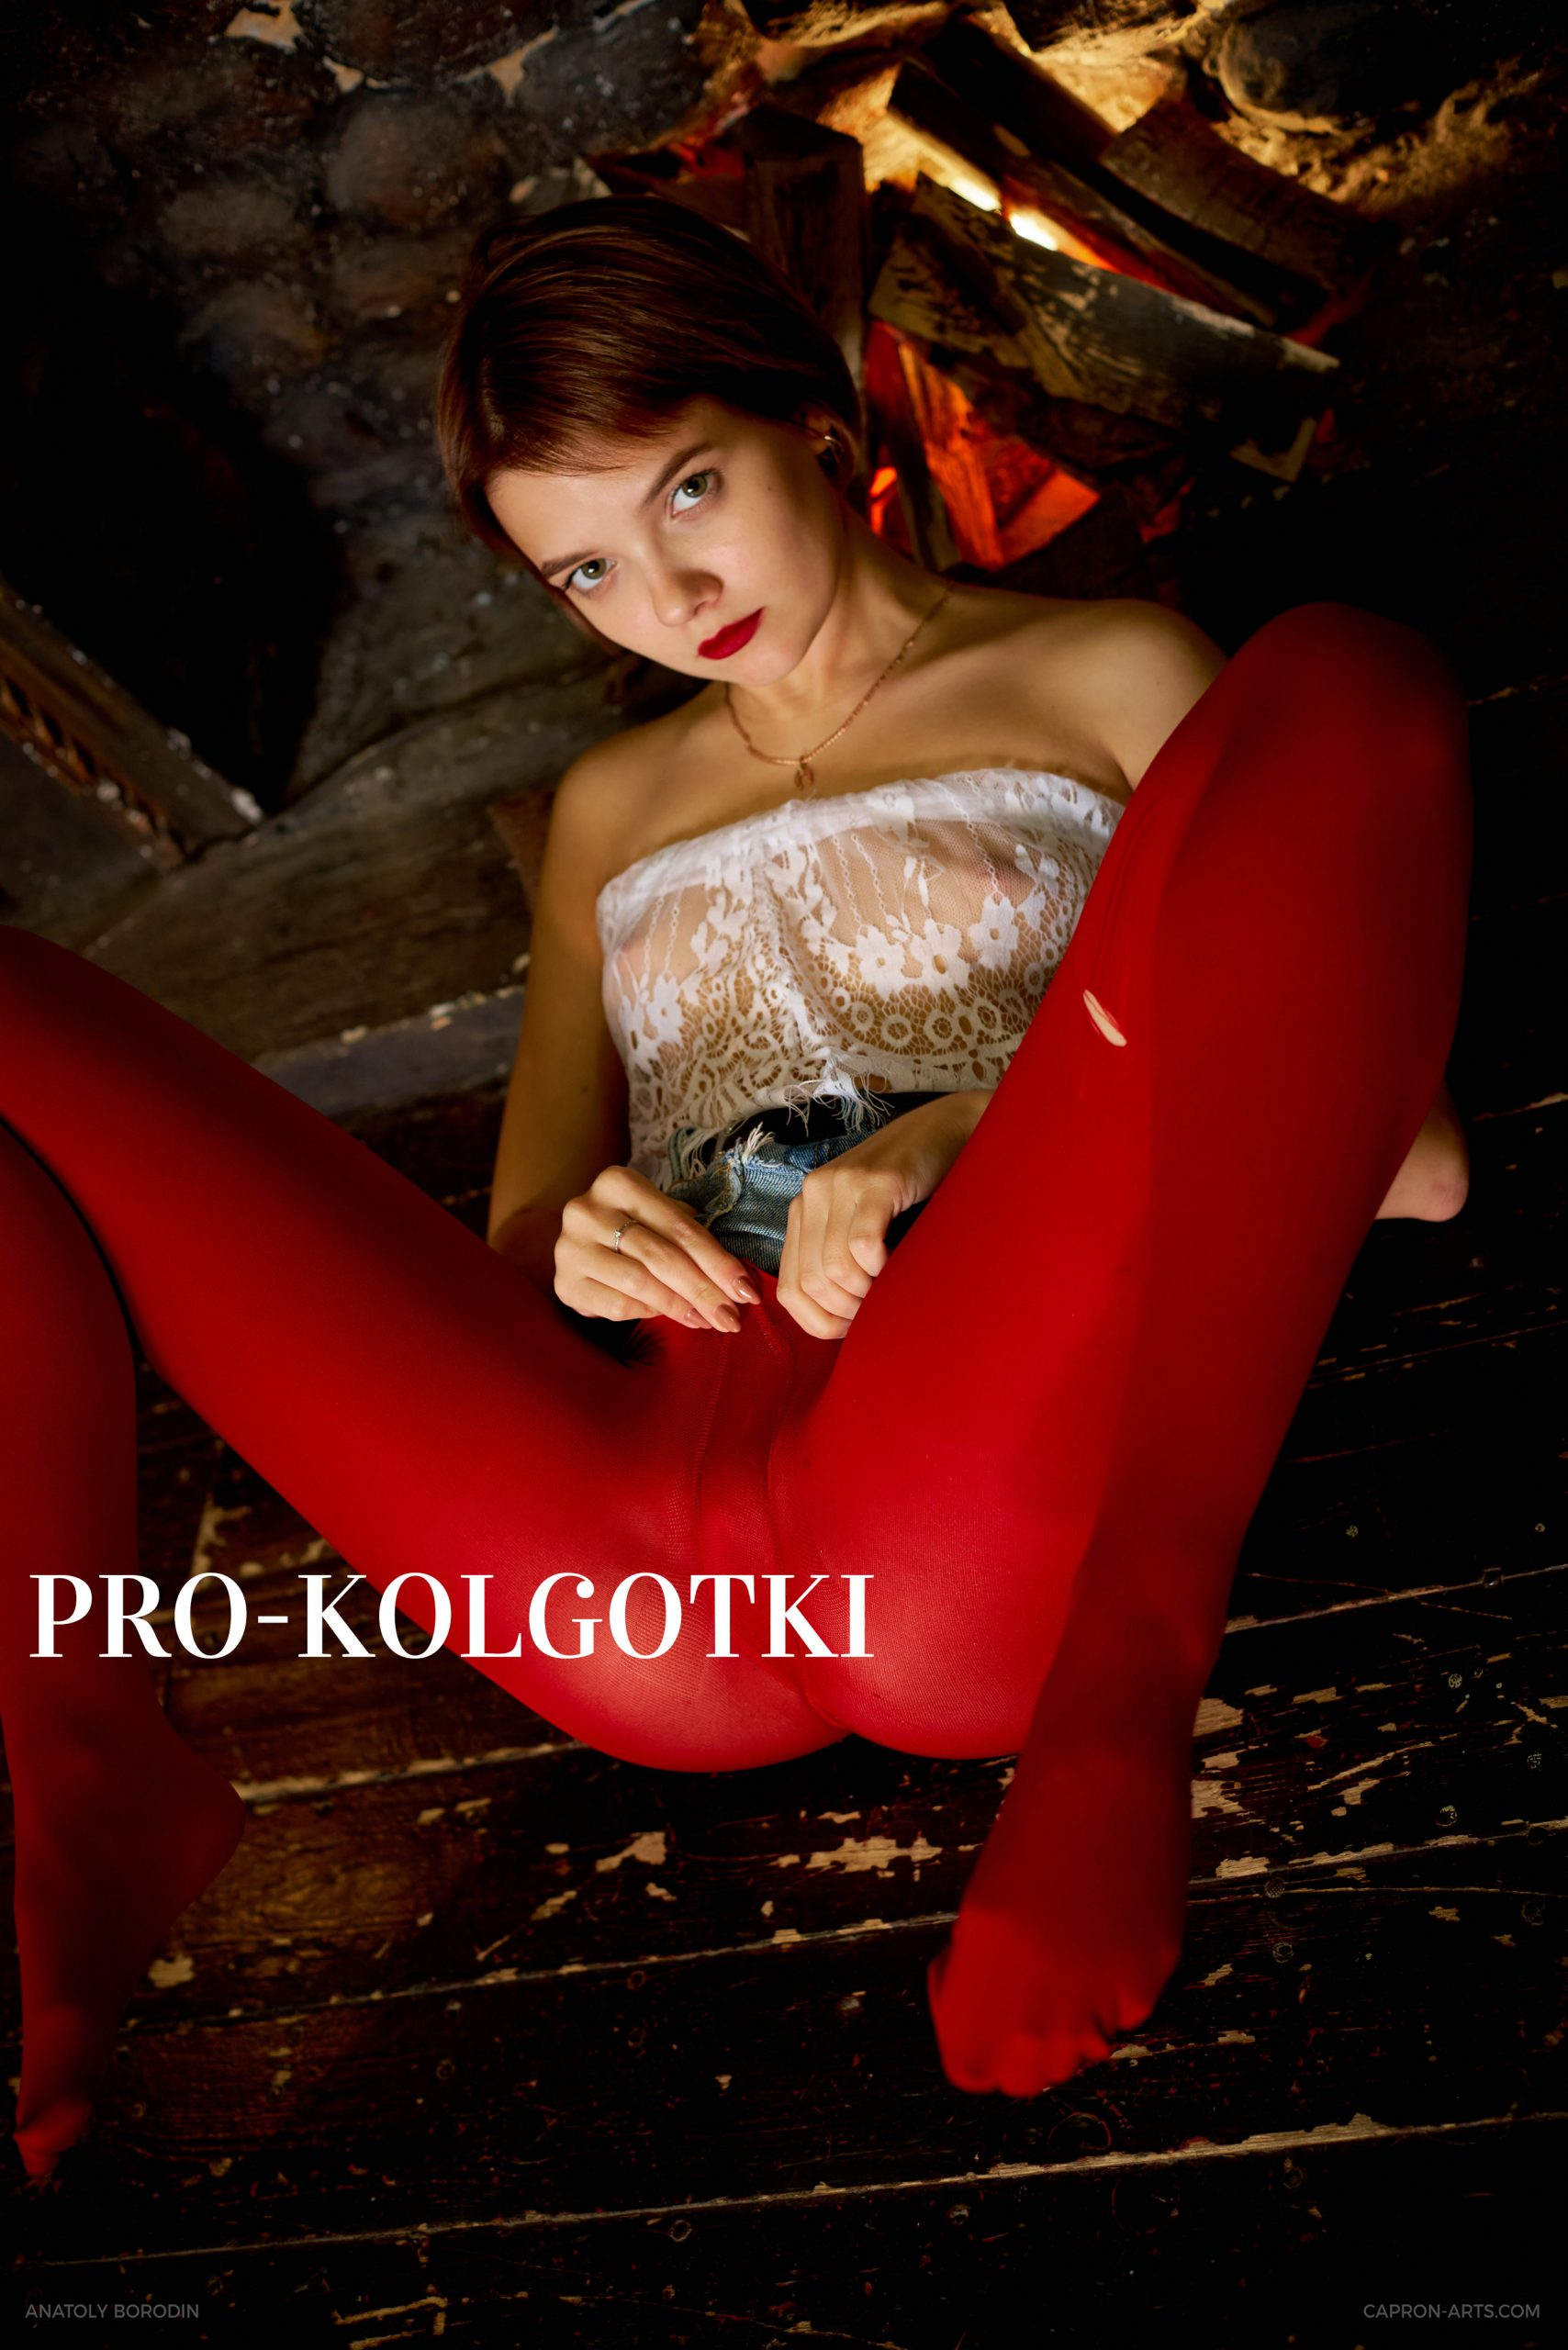 girls in pantyhose - photo from pro-kolgotki magazine January 2020 (part 1)